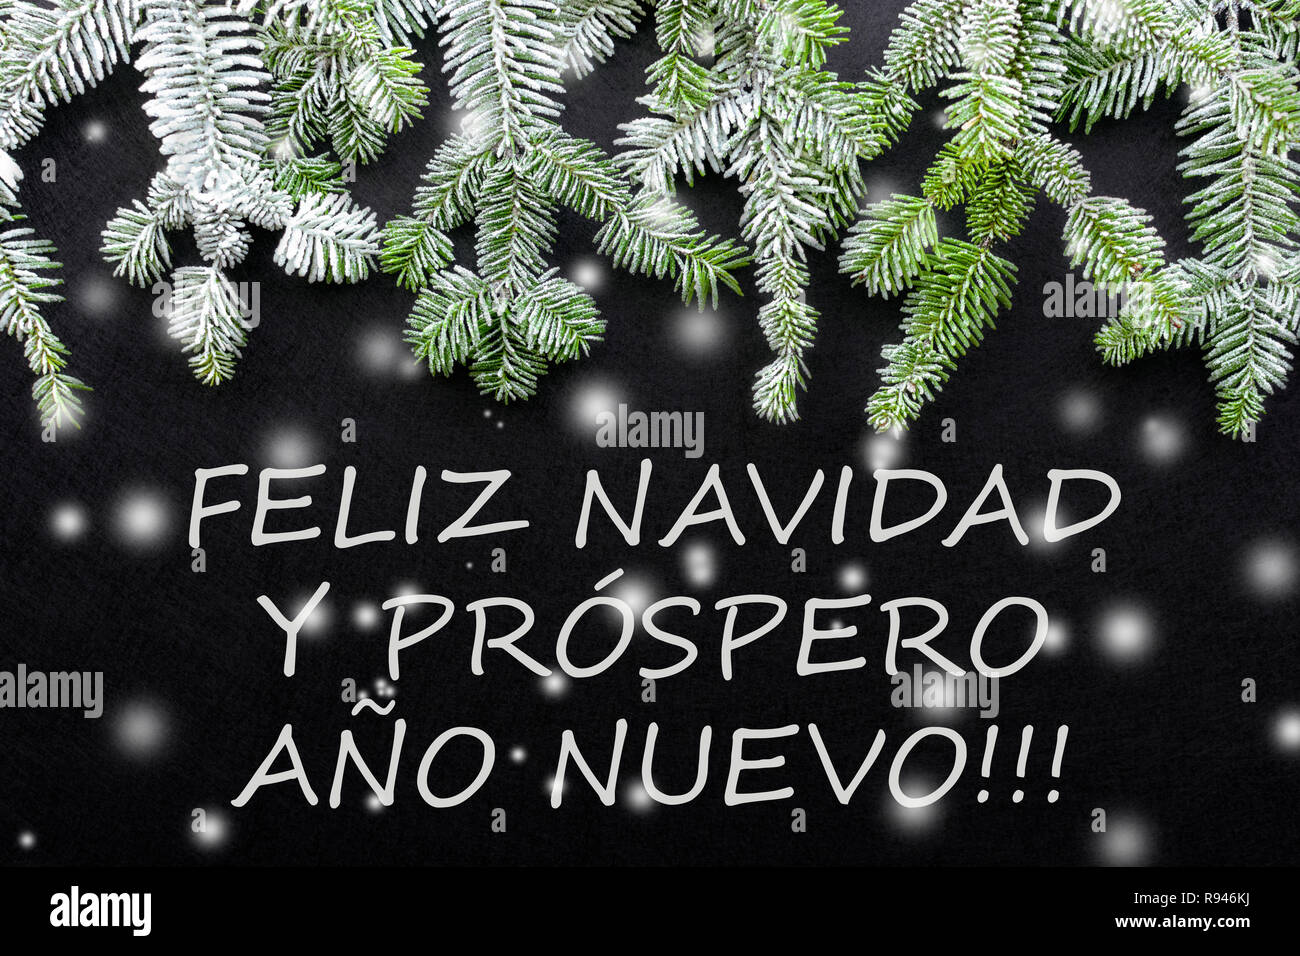 Fir tree and snow on dark background. Greetings Christmas card. Postcard. Christmastime. Red, white and green. 'Feliz Navidad y prospero año nuevo' - Stock Image